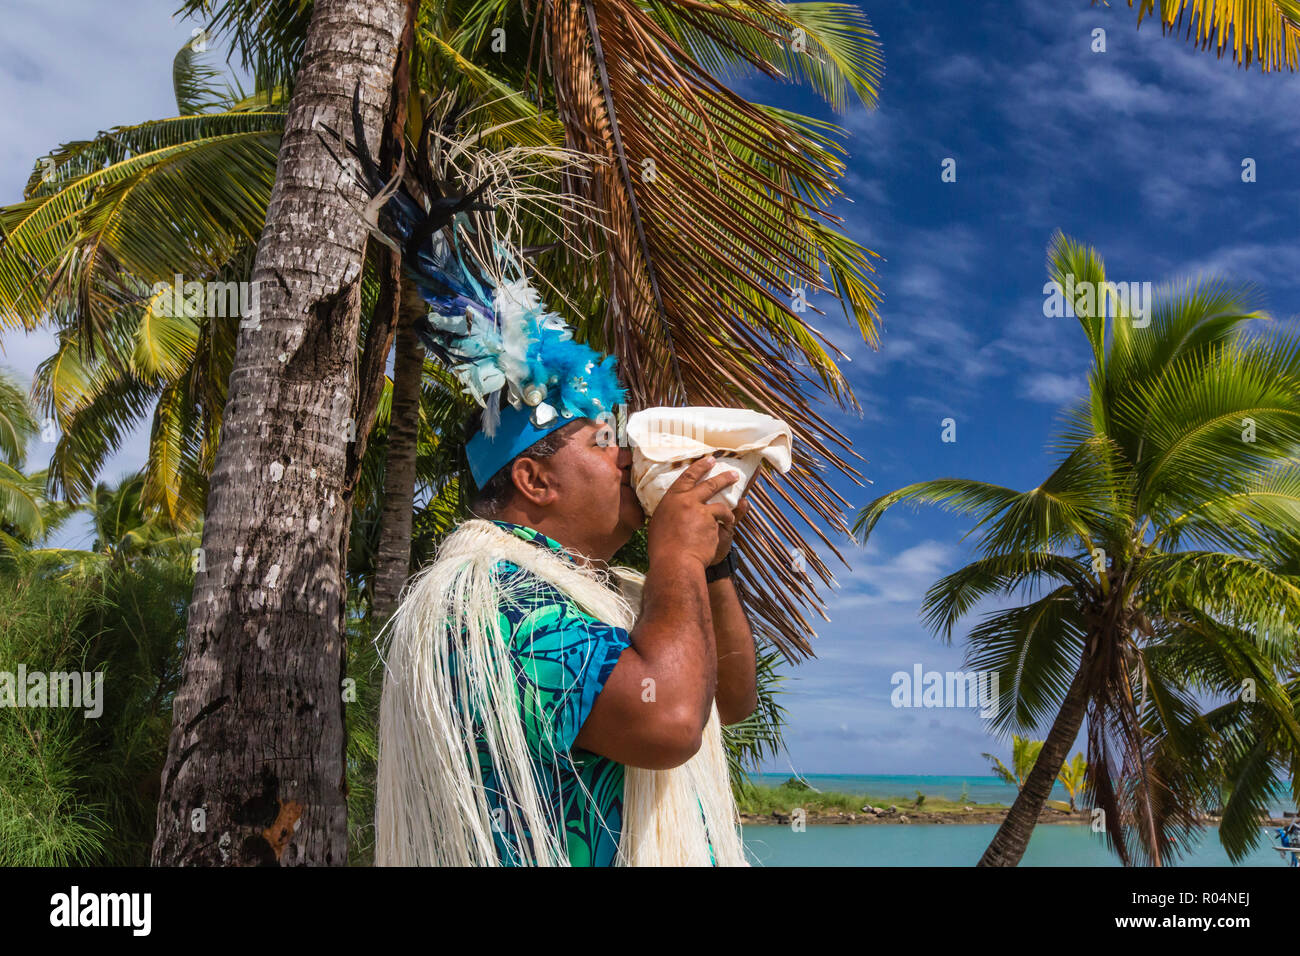 A conch shell blowing warrior welcoming guests to Aitutaki, Cook Islands, South Pacific Islands, Pacific - Stock Image